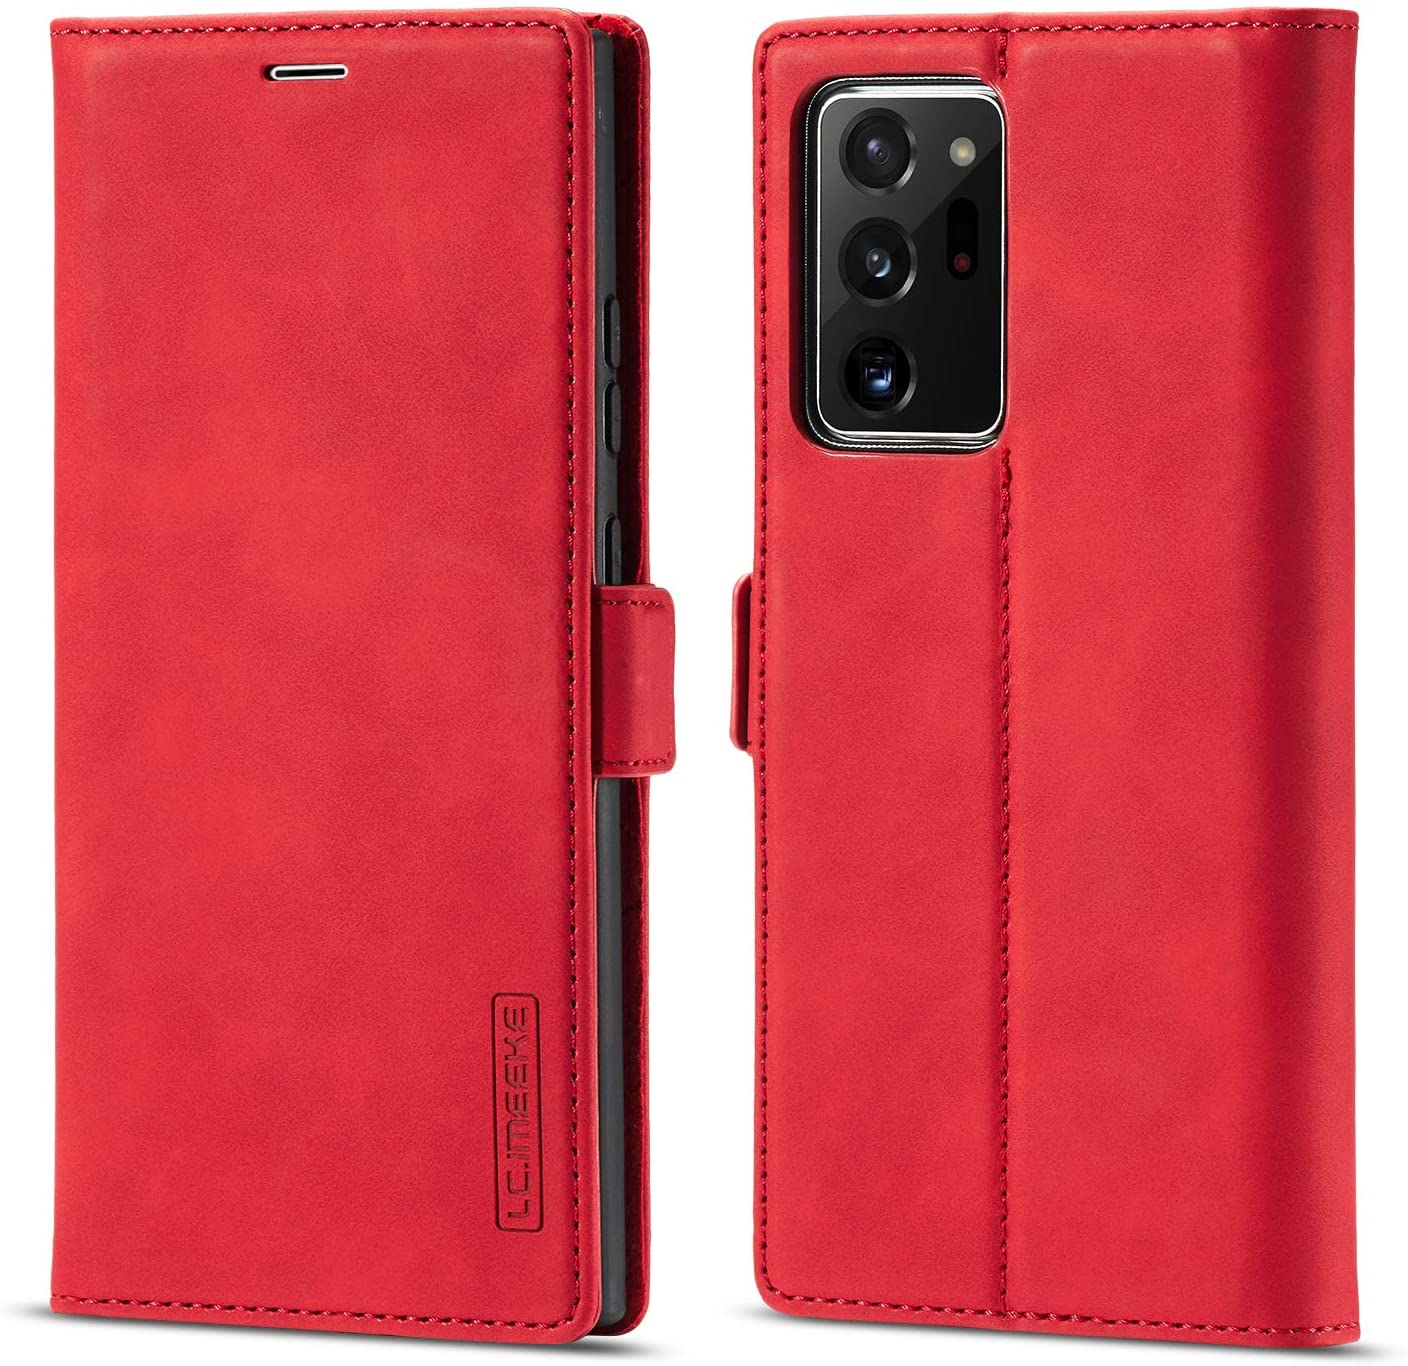 EYZUTAK Case for Samsung Galaxy S8, Classic Matte Leather Wallet Case Flip Notebook Style Cover with with Magnetic Closure Kickstand Card Slots - Red